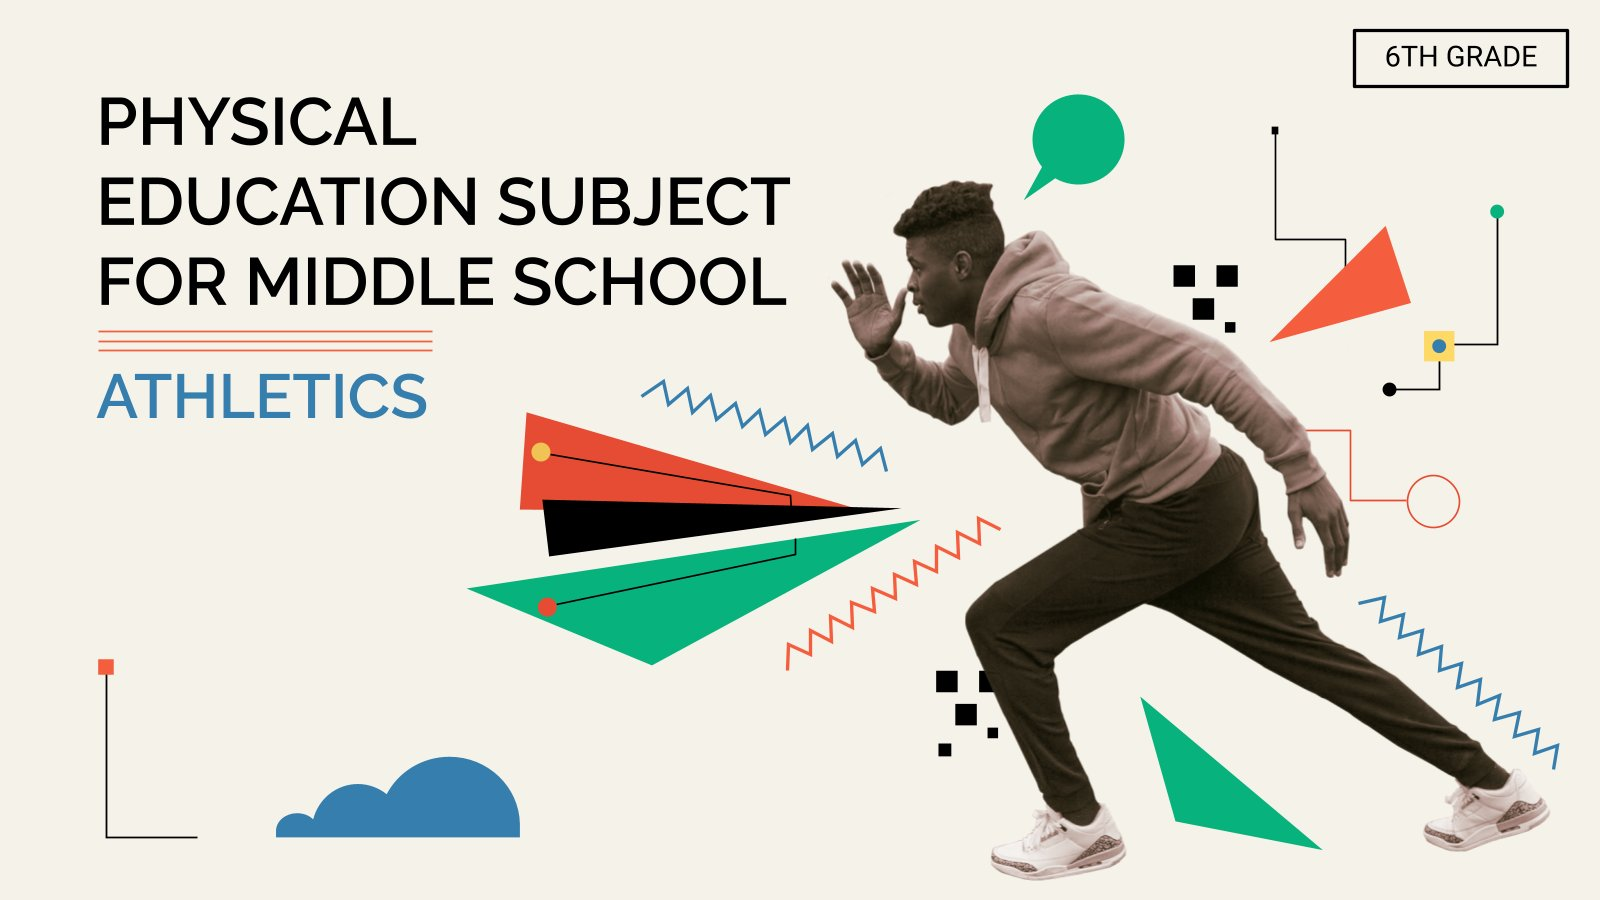 Physical Education Subject for Middle School - 6th Grade: Athletics presentation template